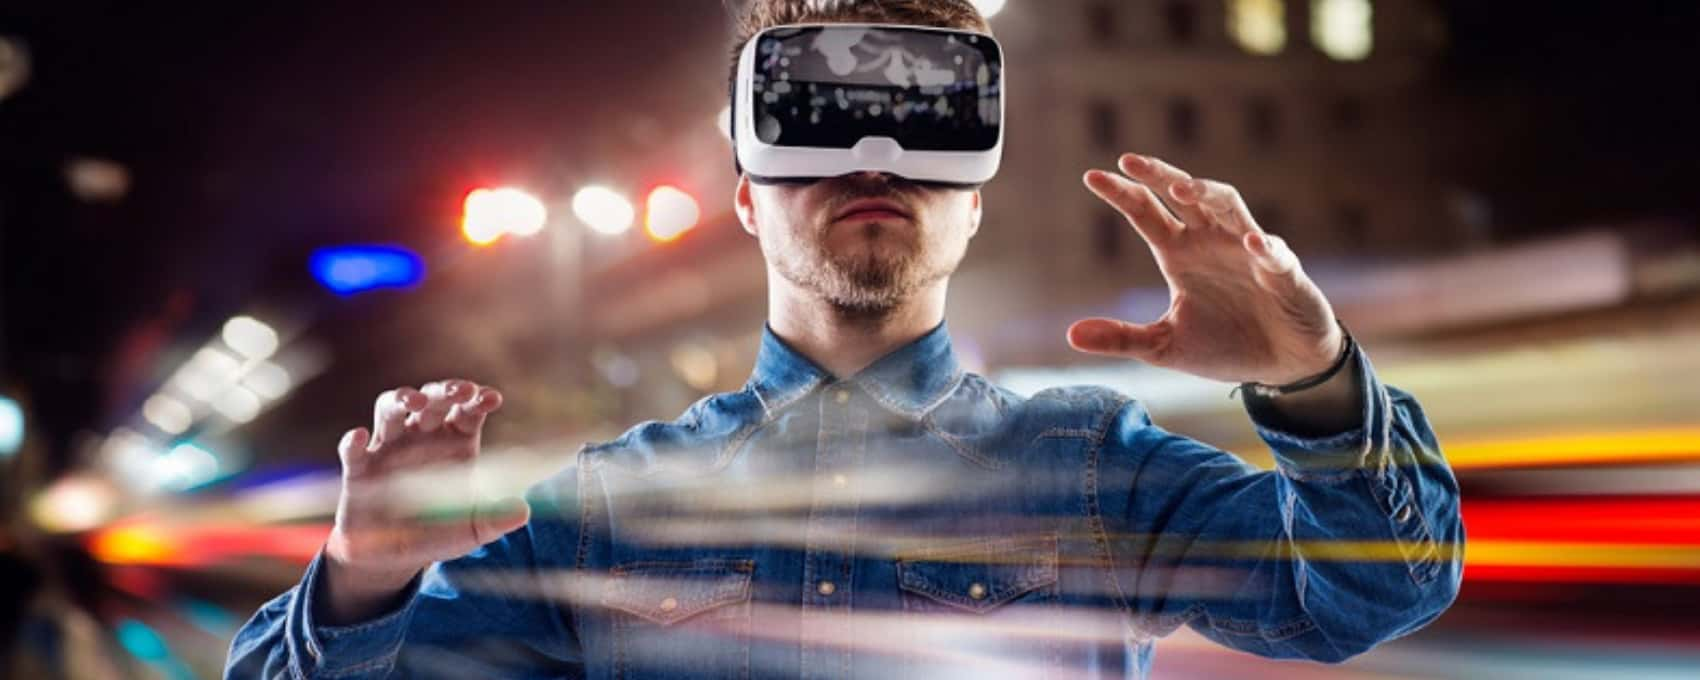 6 Ways Augmented Reality and Virtual Reality Improve The Way we Work